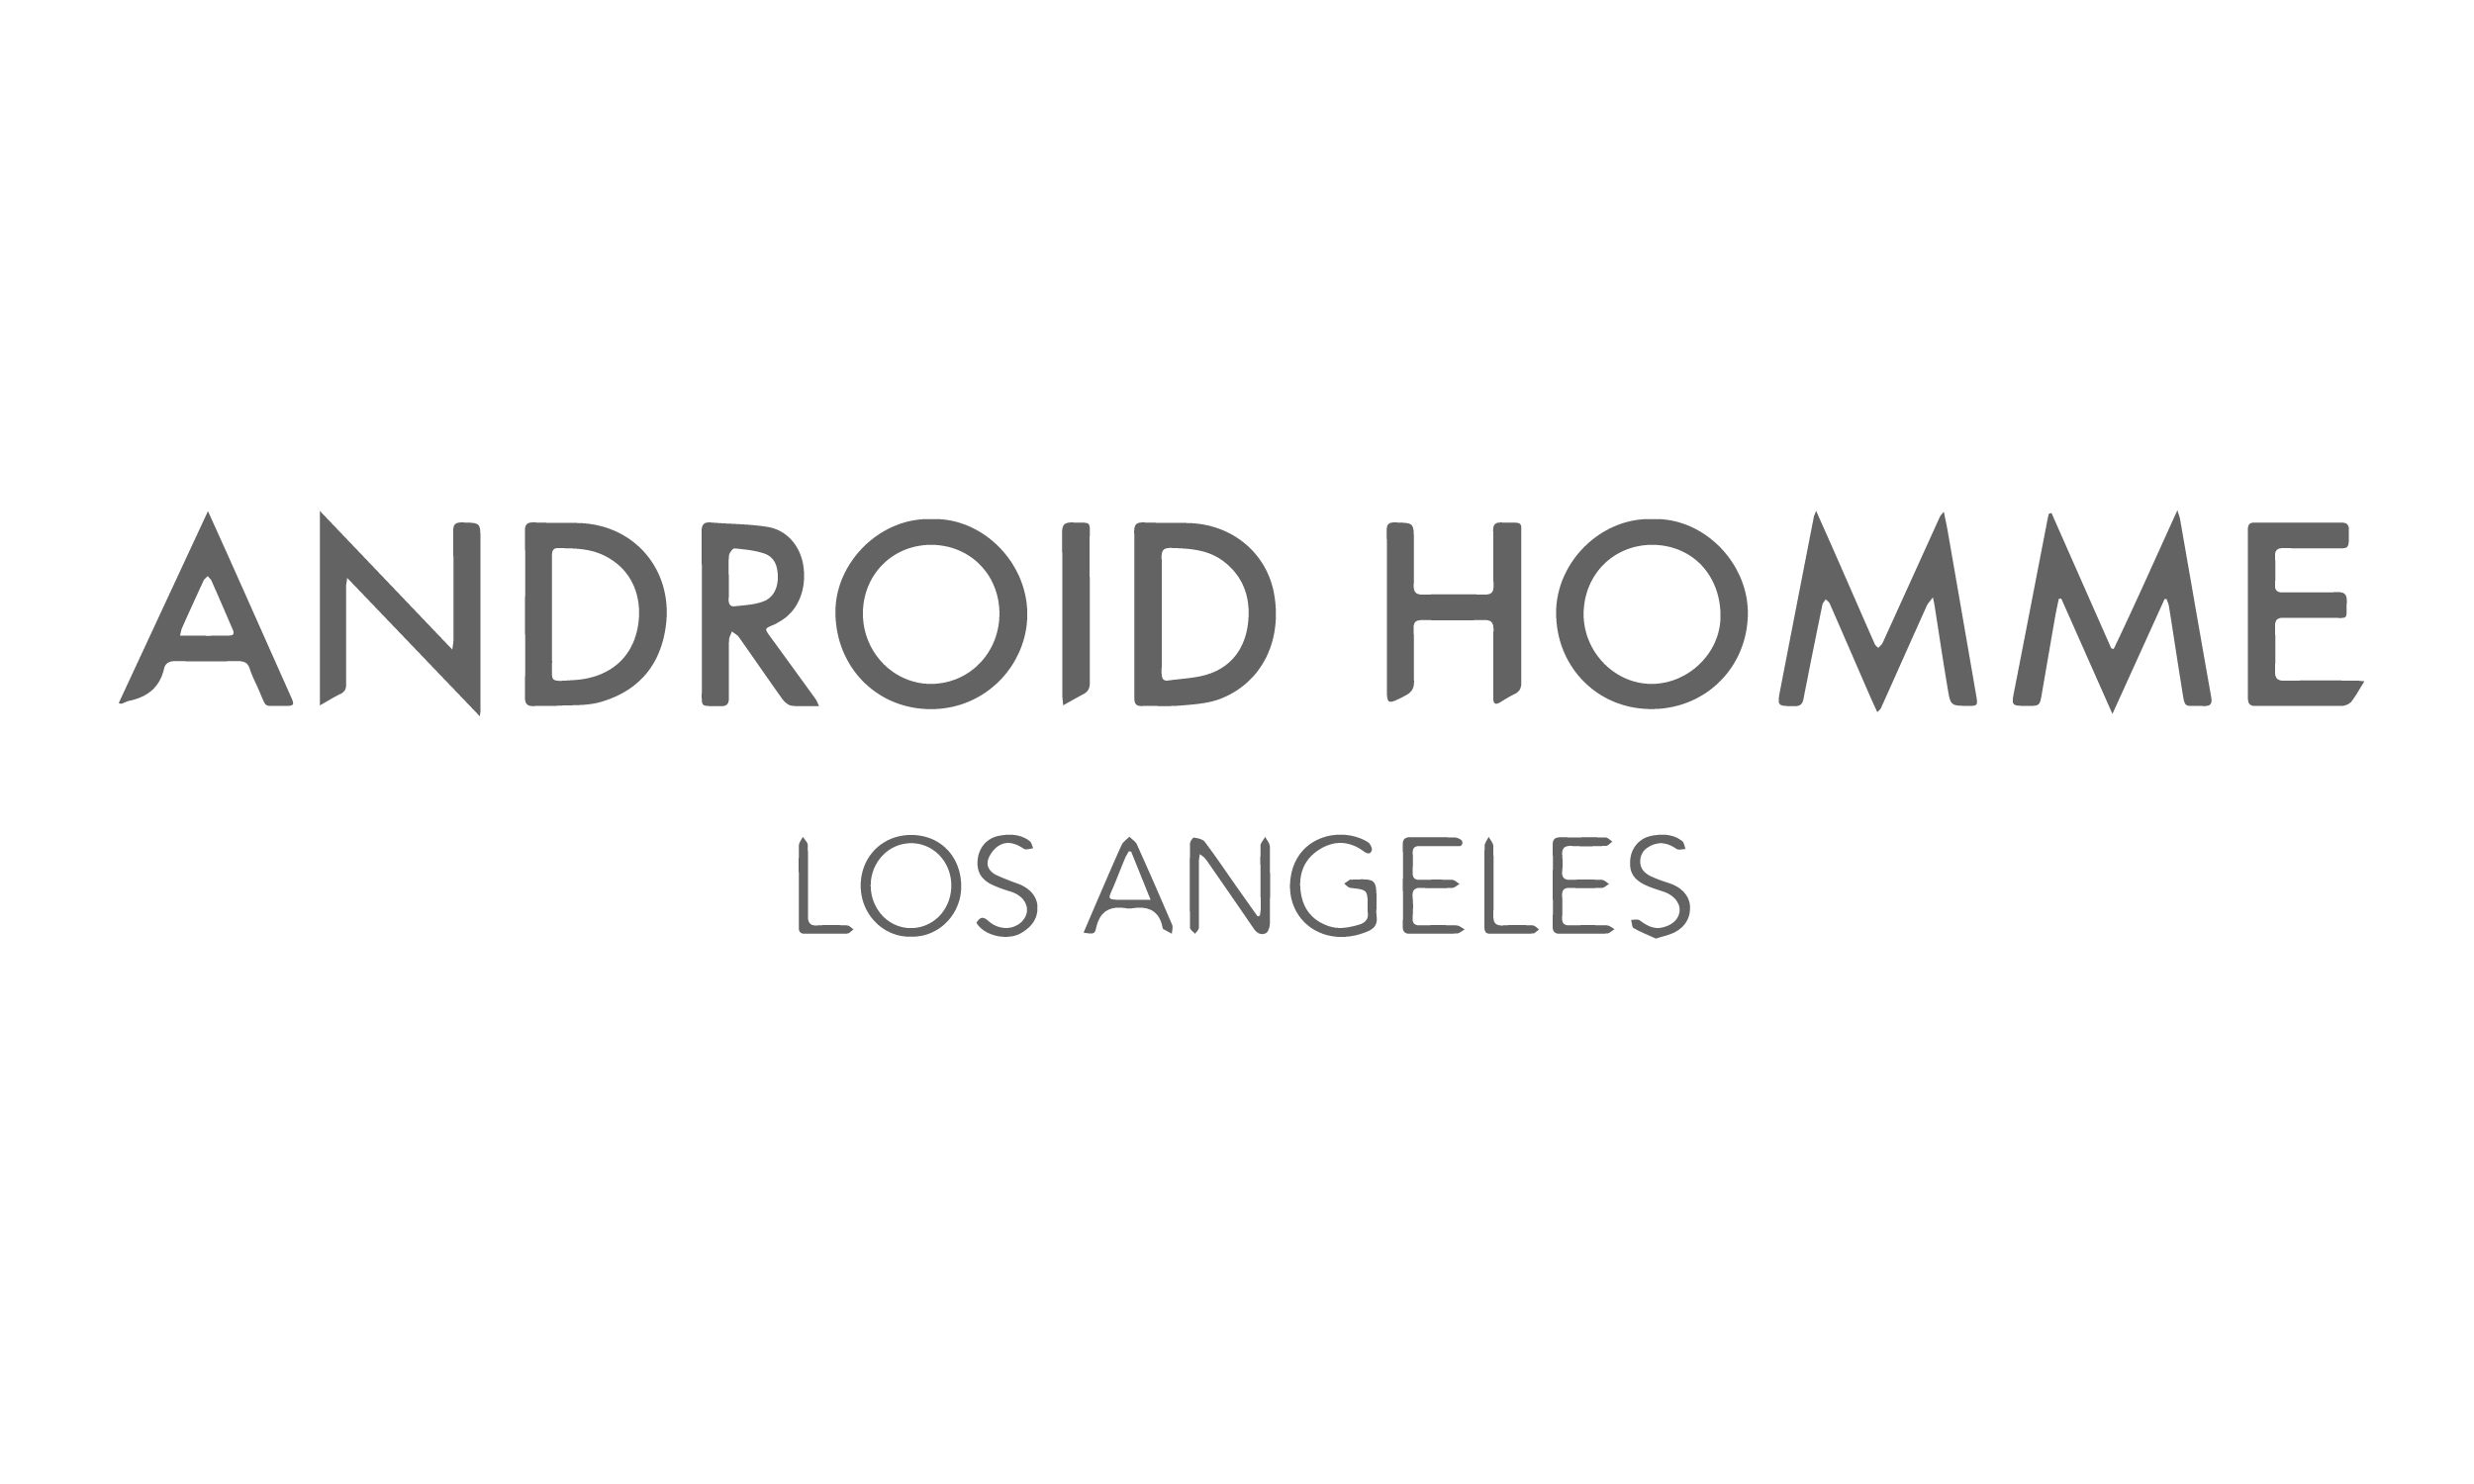 Android Homme Logo